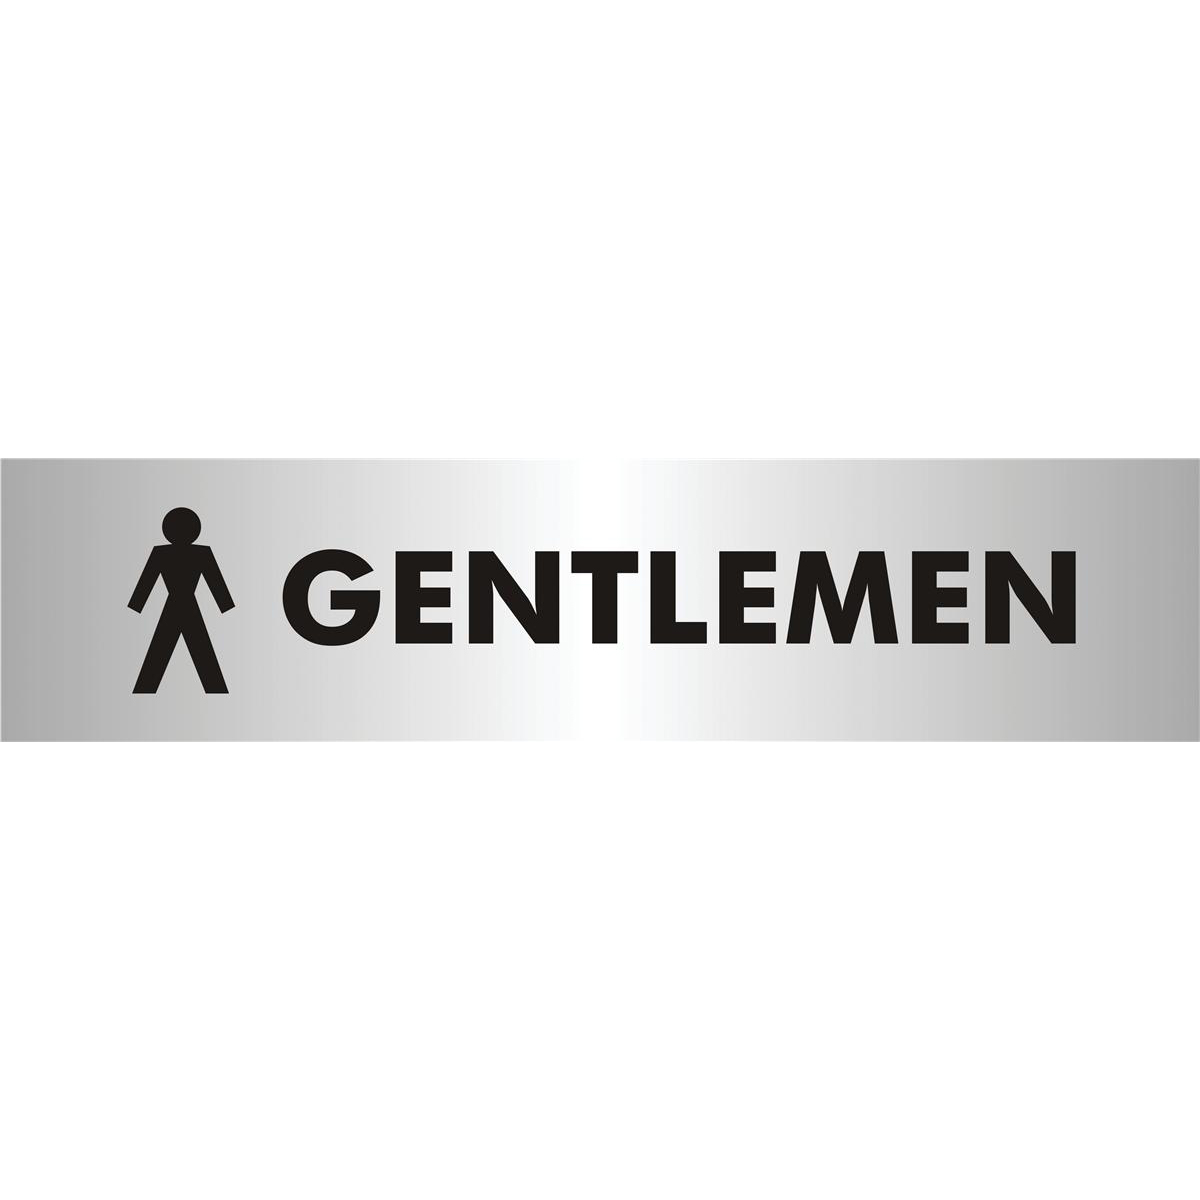 Stewart Superior Gentlemen Sign Brushed Aluminium Acrylic W190xH45mm Self-adhesive Ref bac112